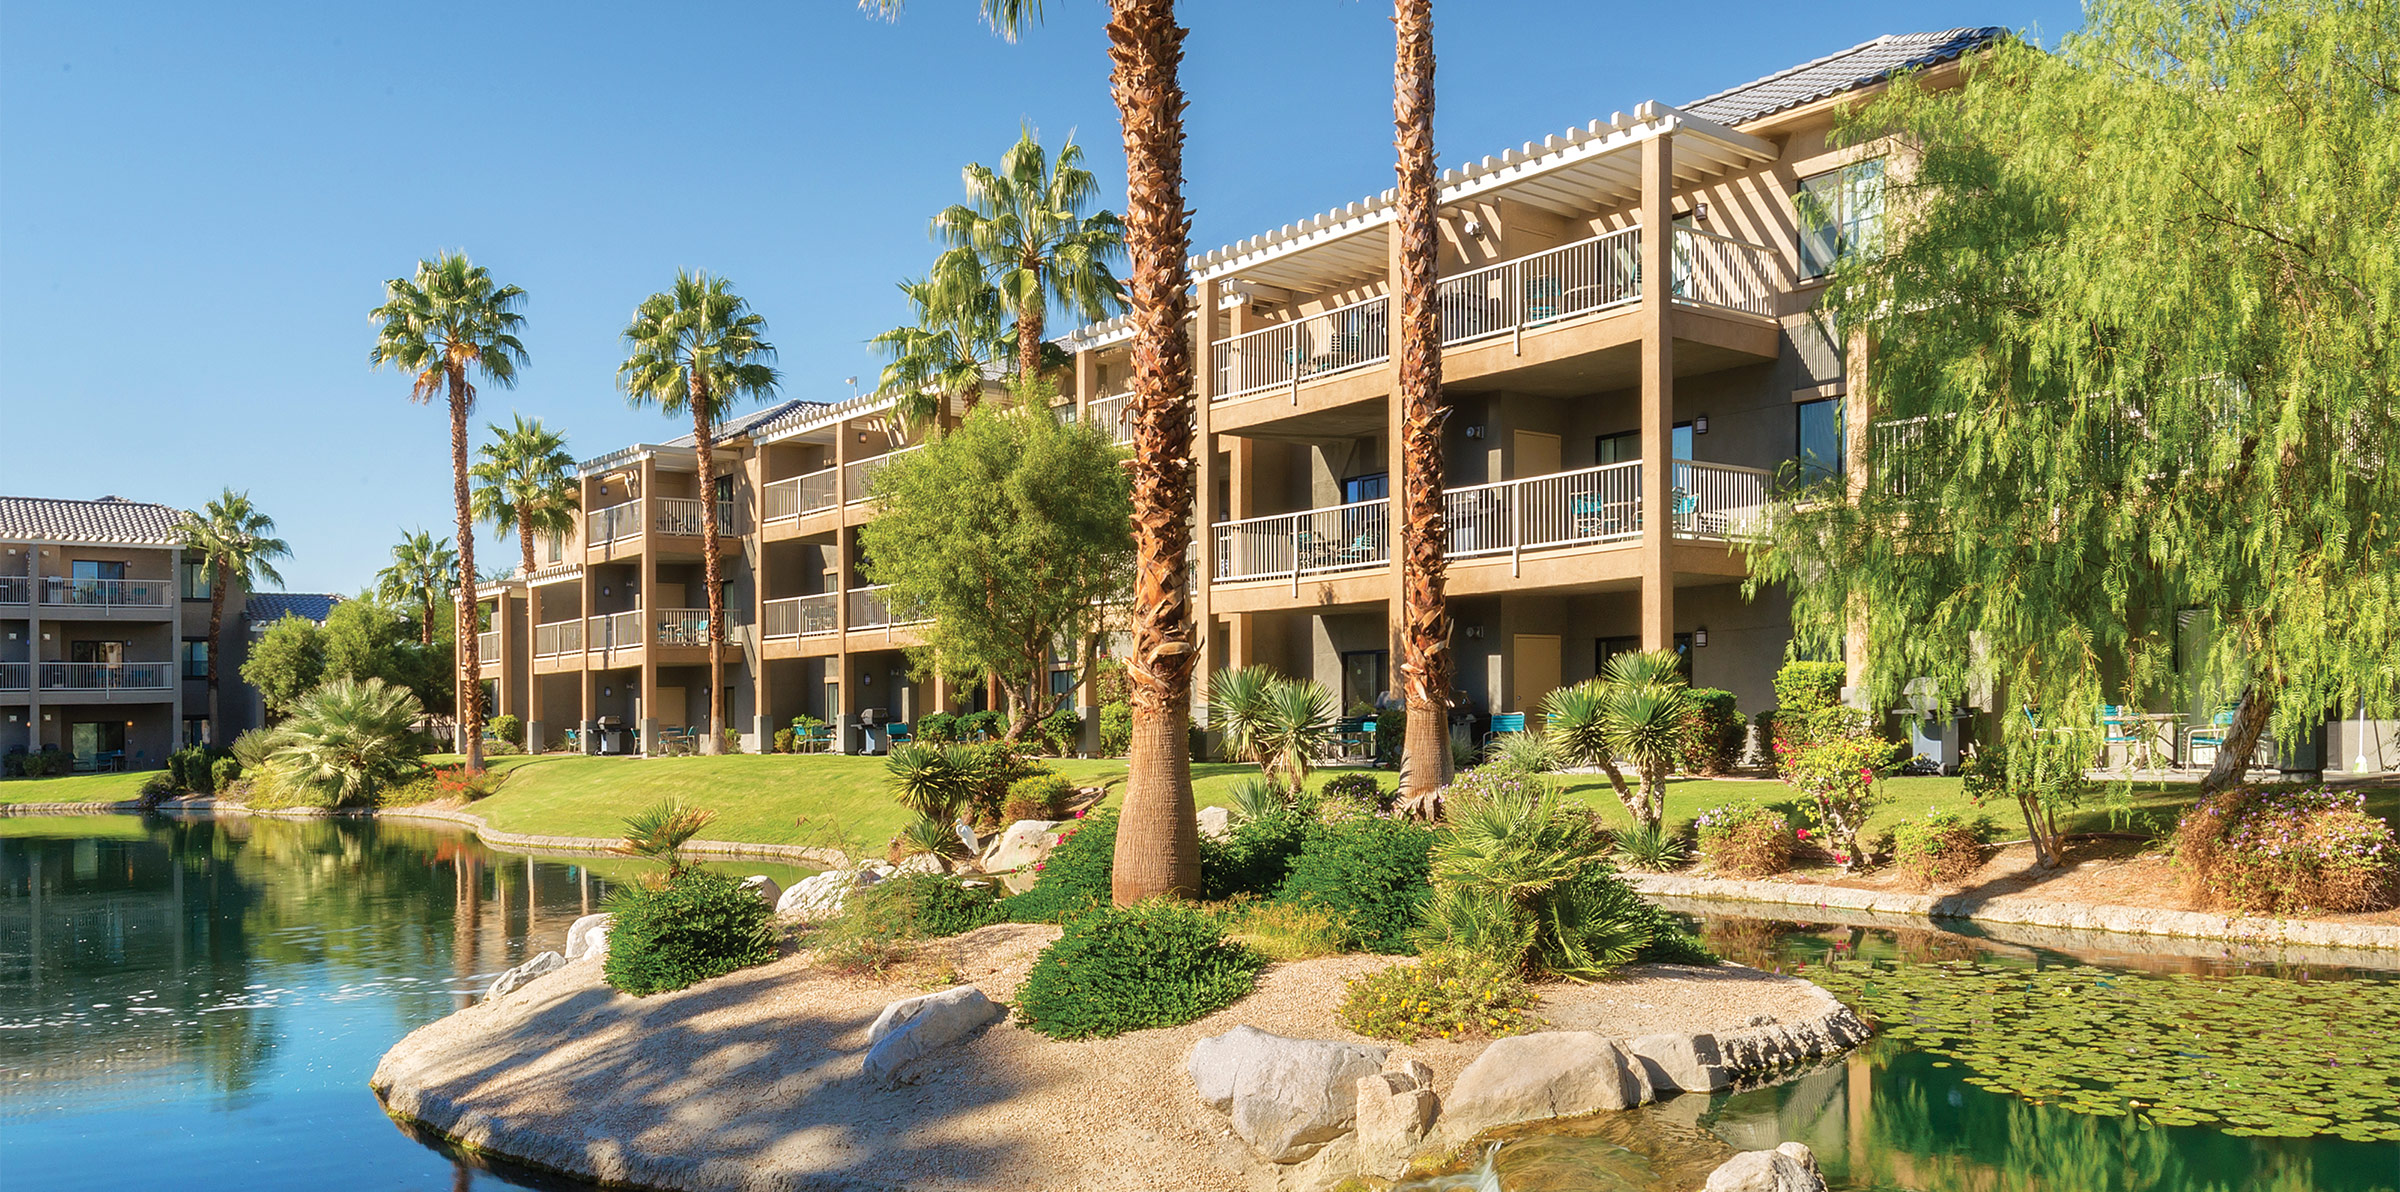 Apartment 1 Bedroom 1 Bath In Indio  CA   Palm Springs  5 miles from COACHELLA photo 18530561